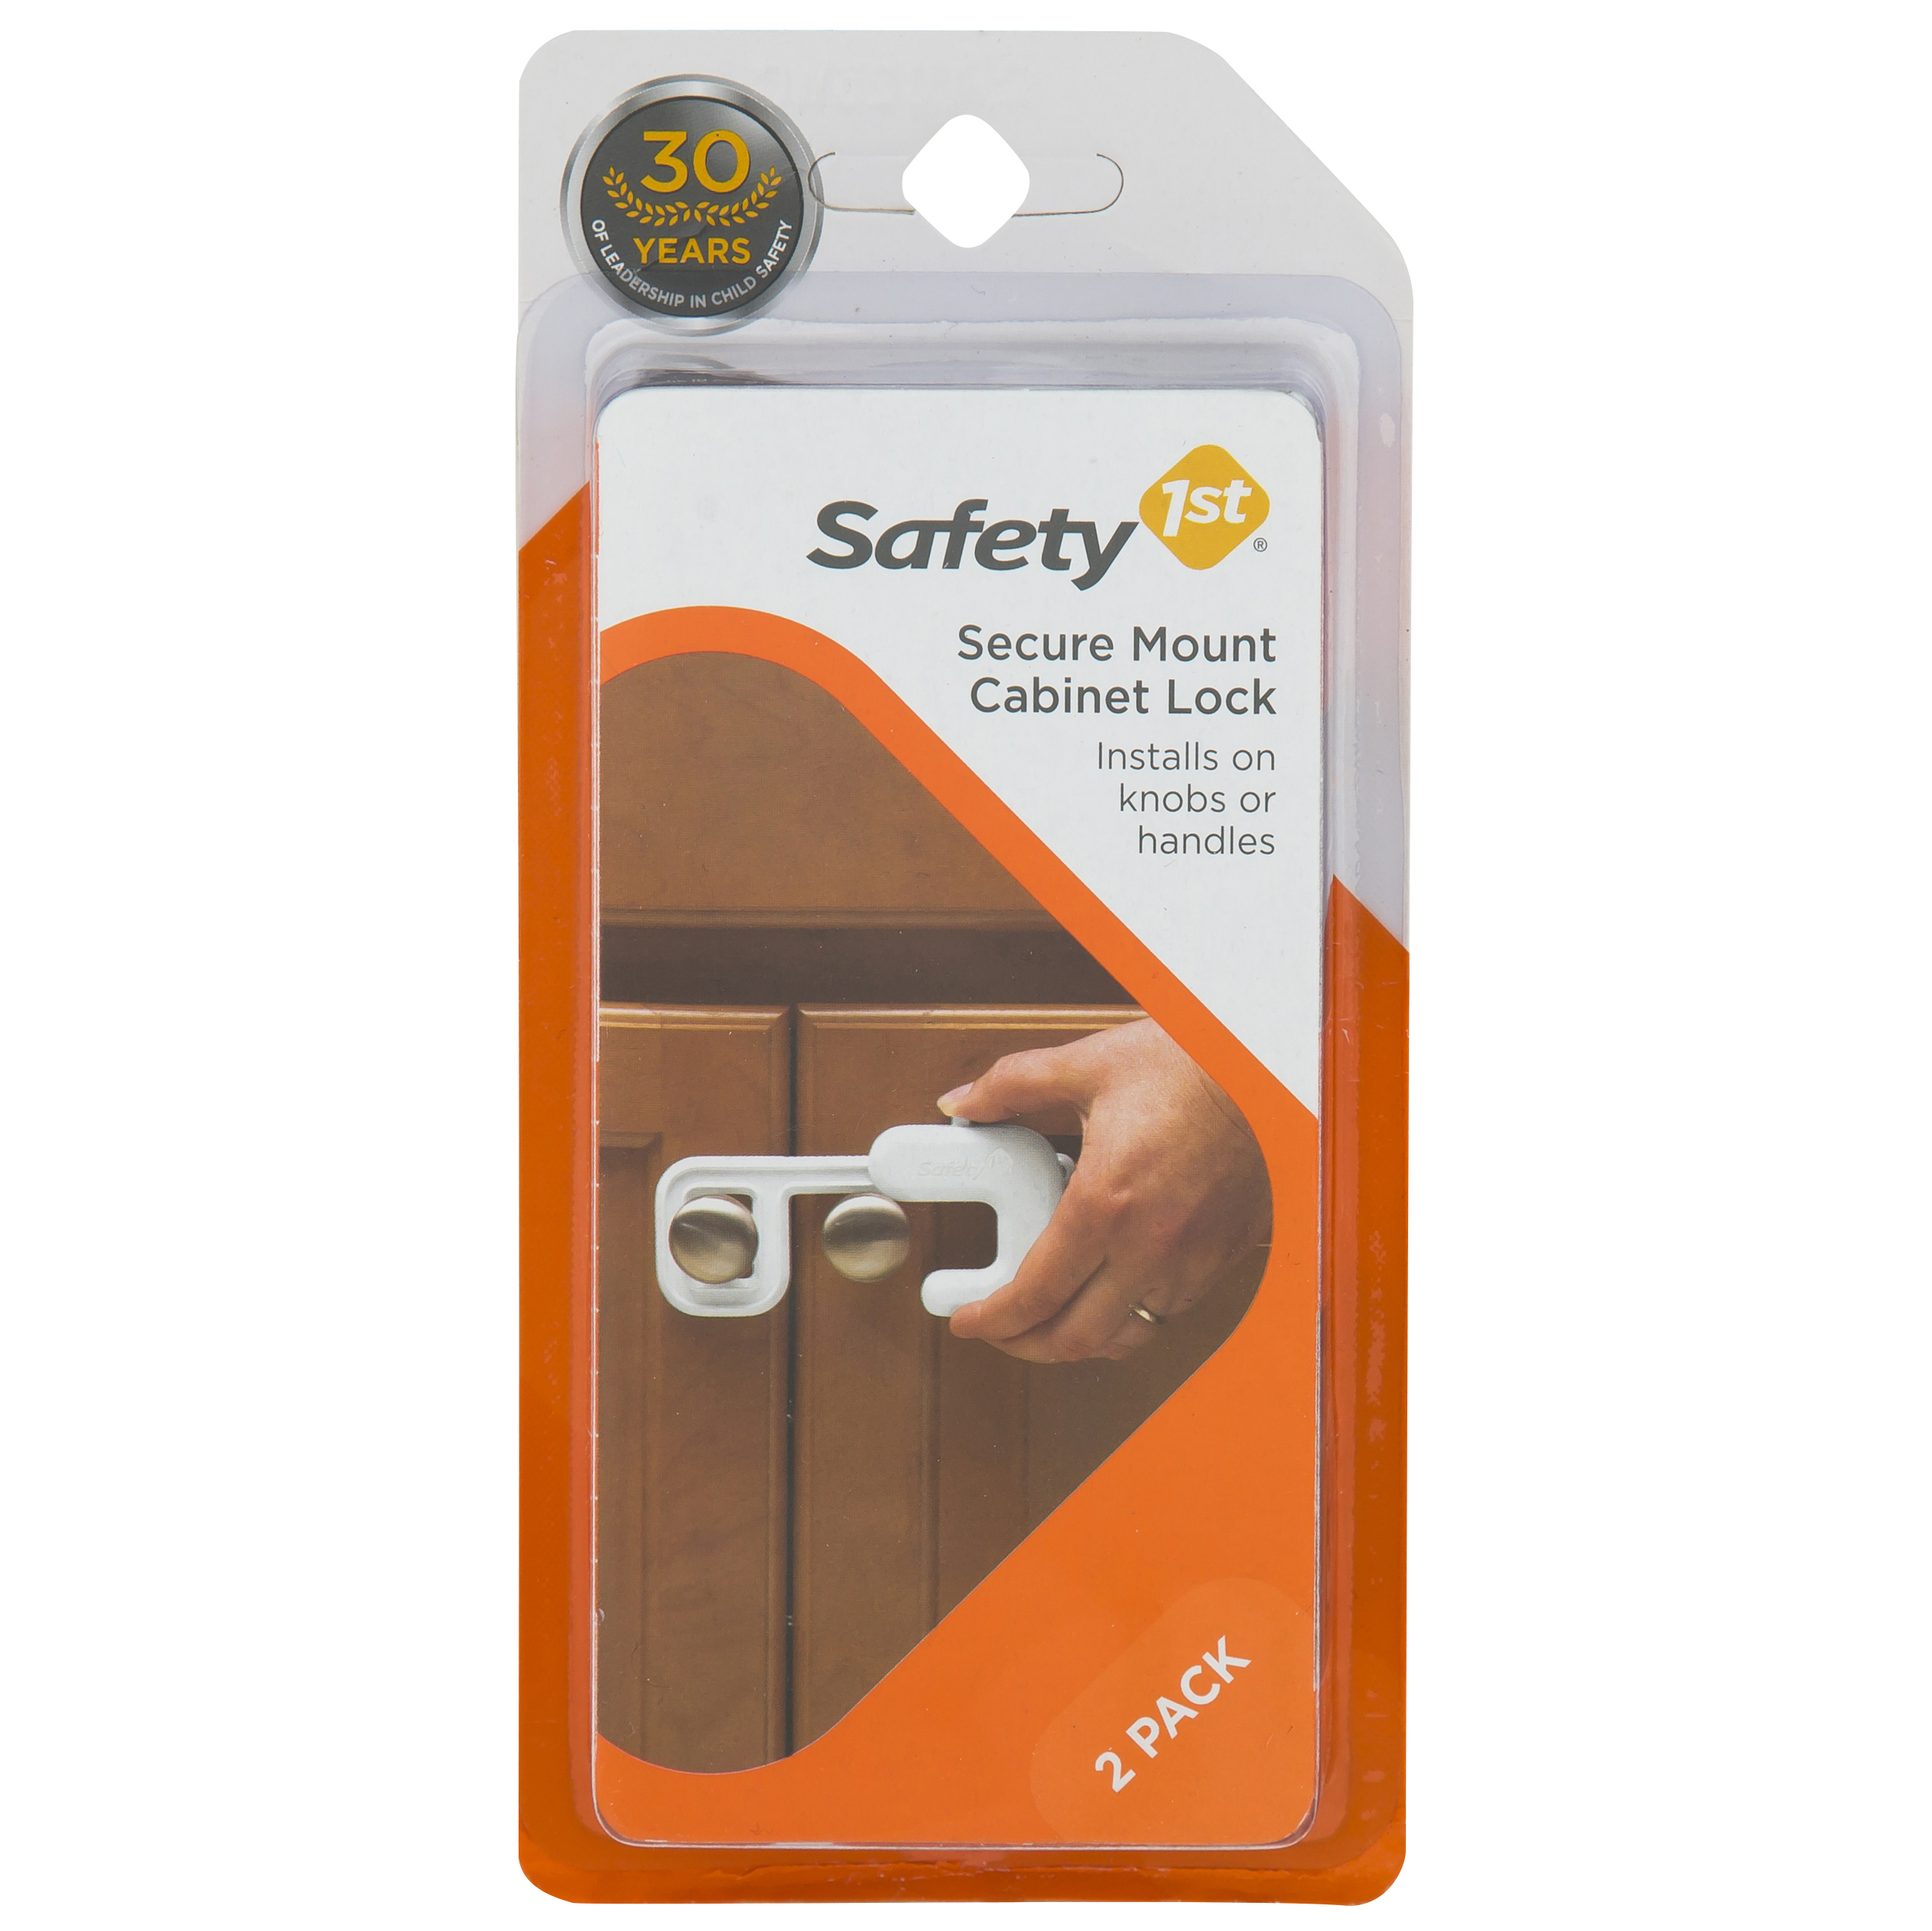 Safety 1ˢᵗ Secure Mount Home Safety Cabinet Lock, White